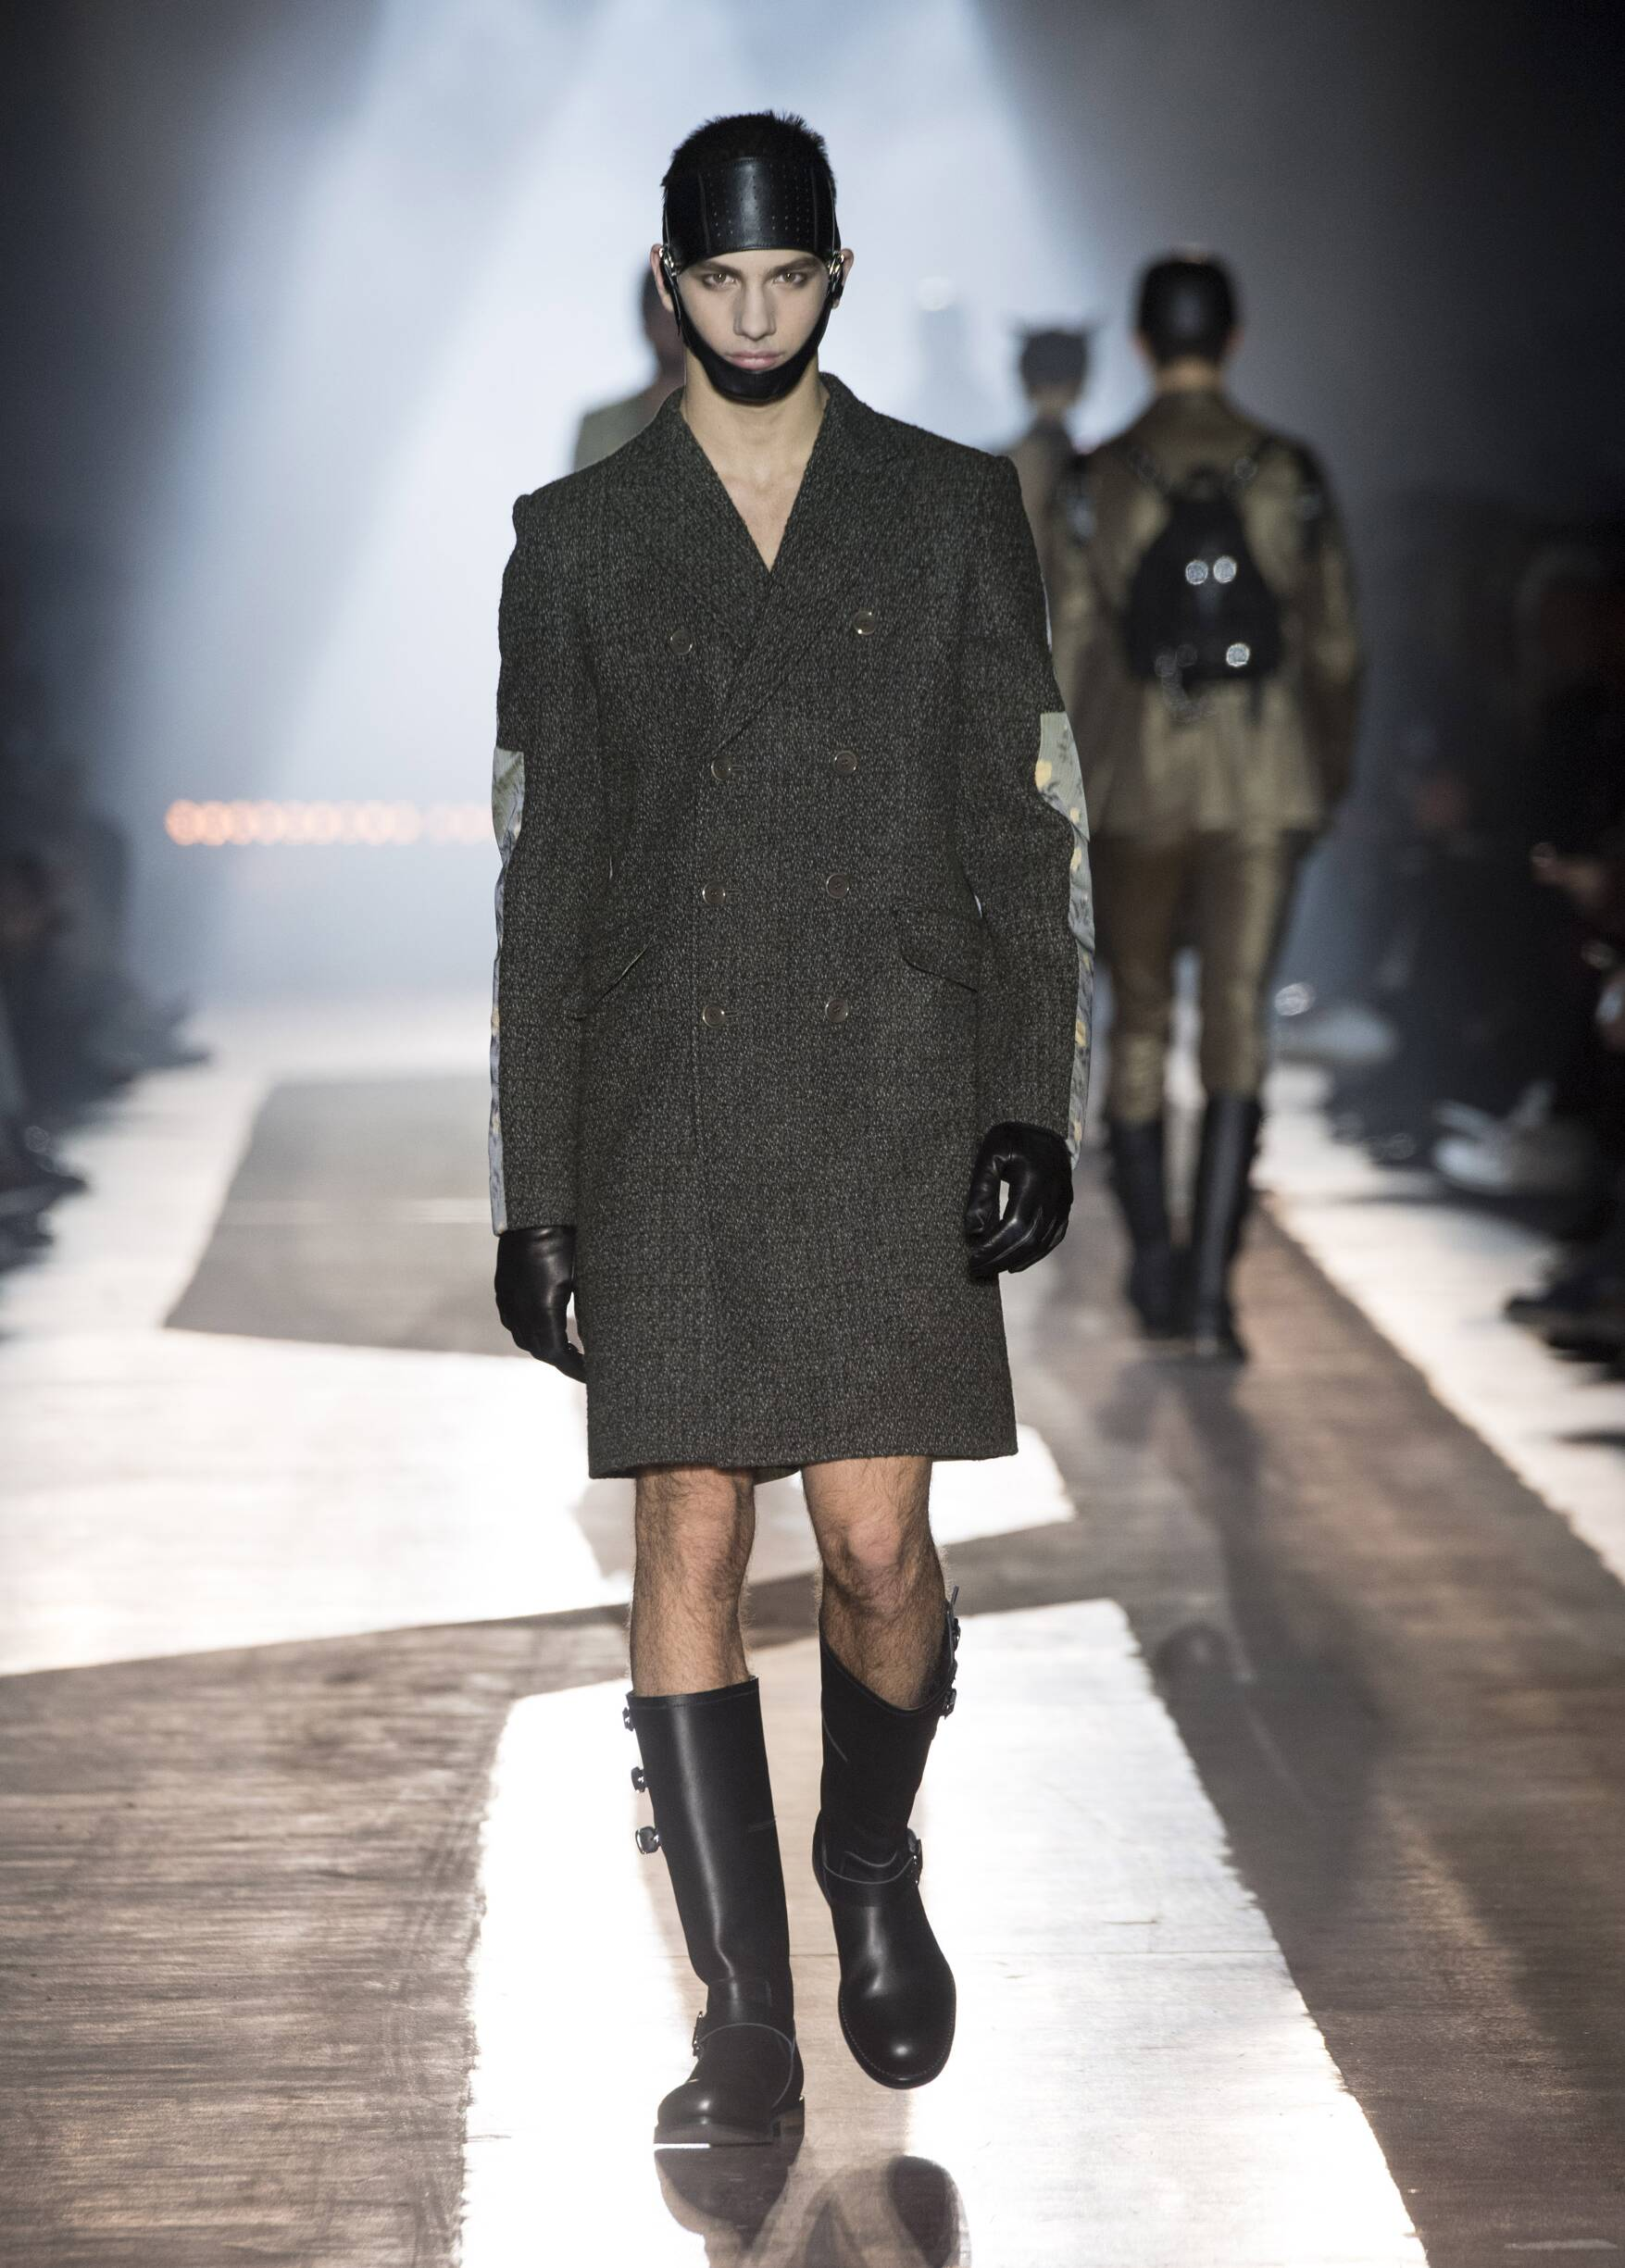 Moschino Fall 2018 Man Catwalk